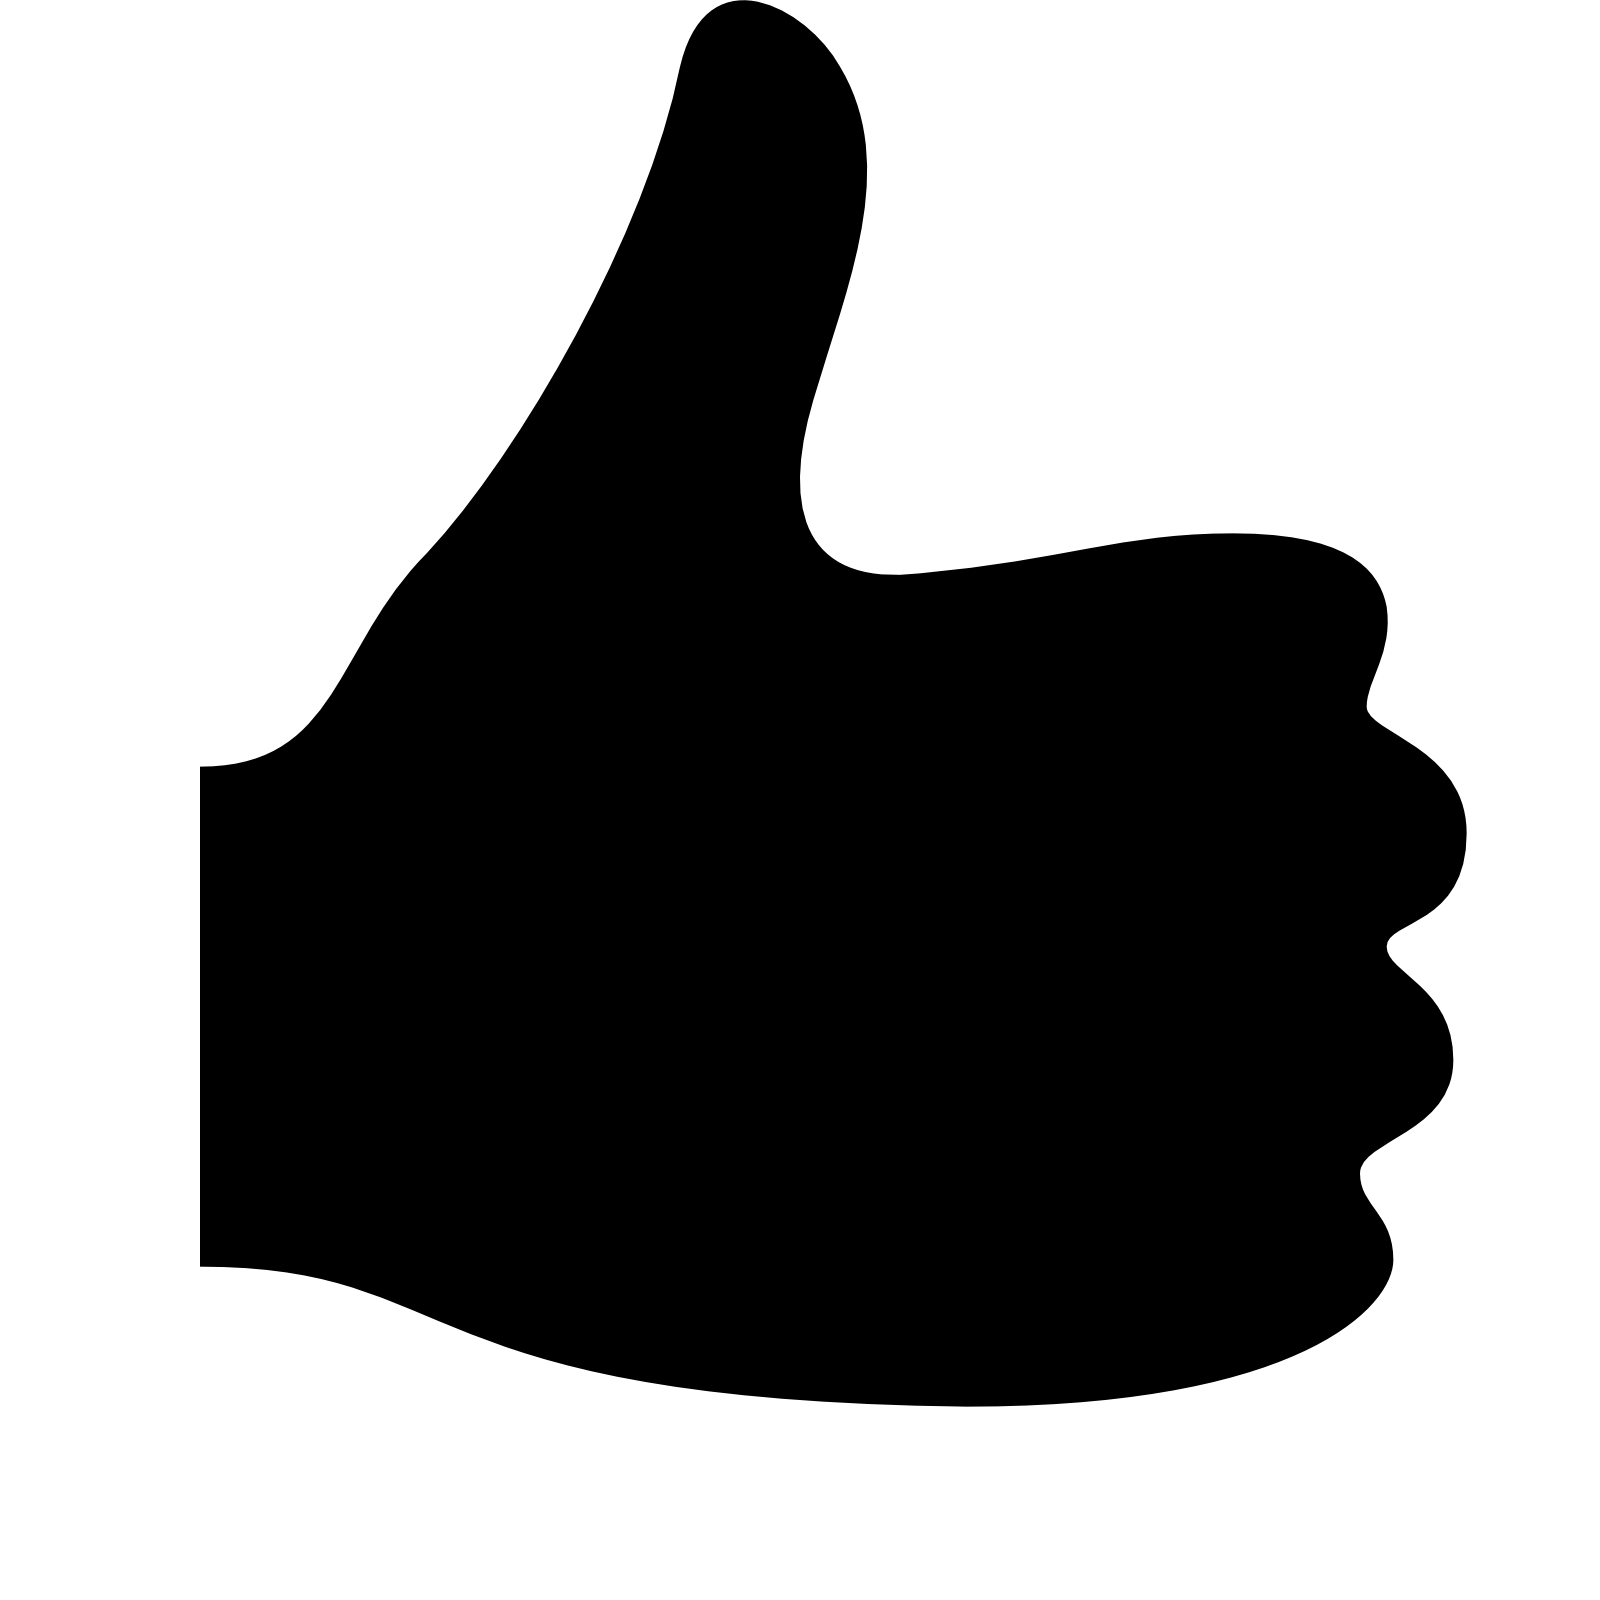 Thumb clipart side. Thumbs up icon down